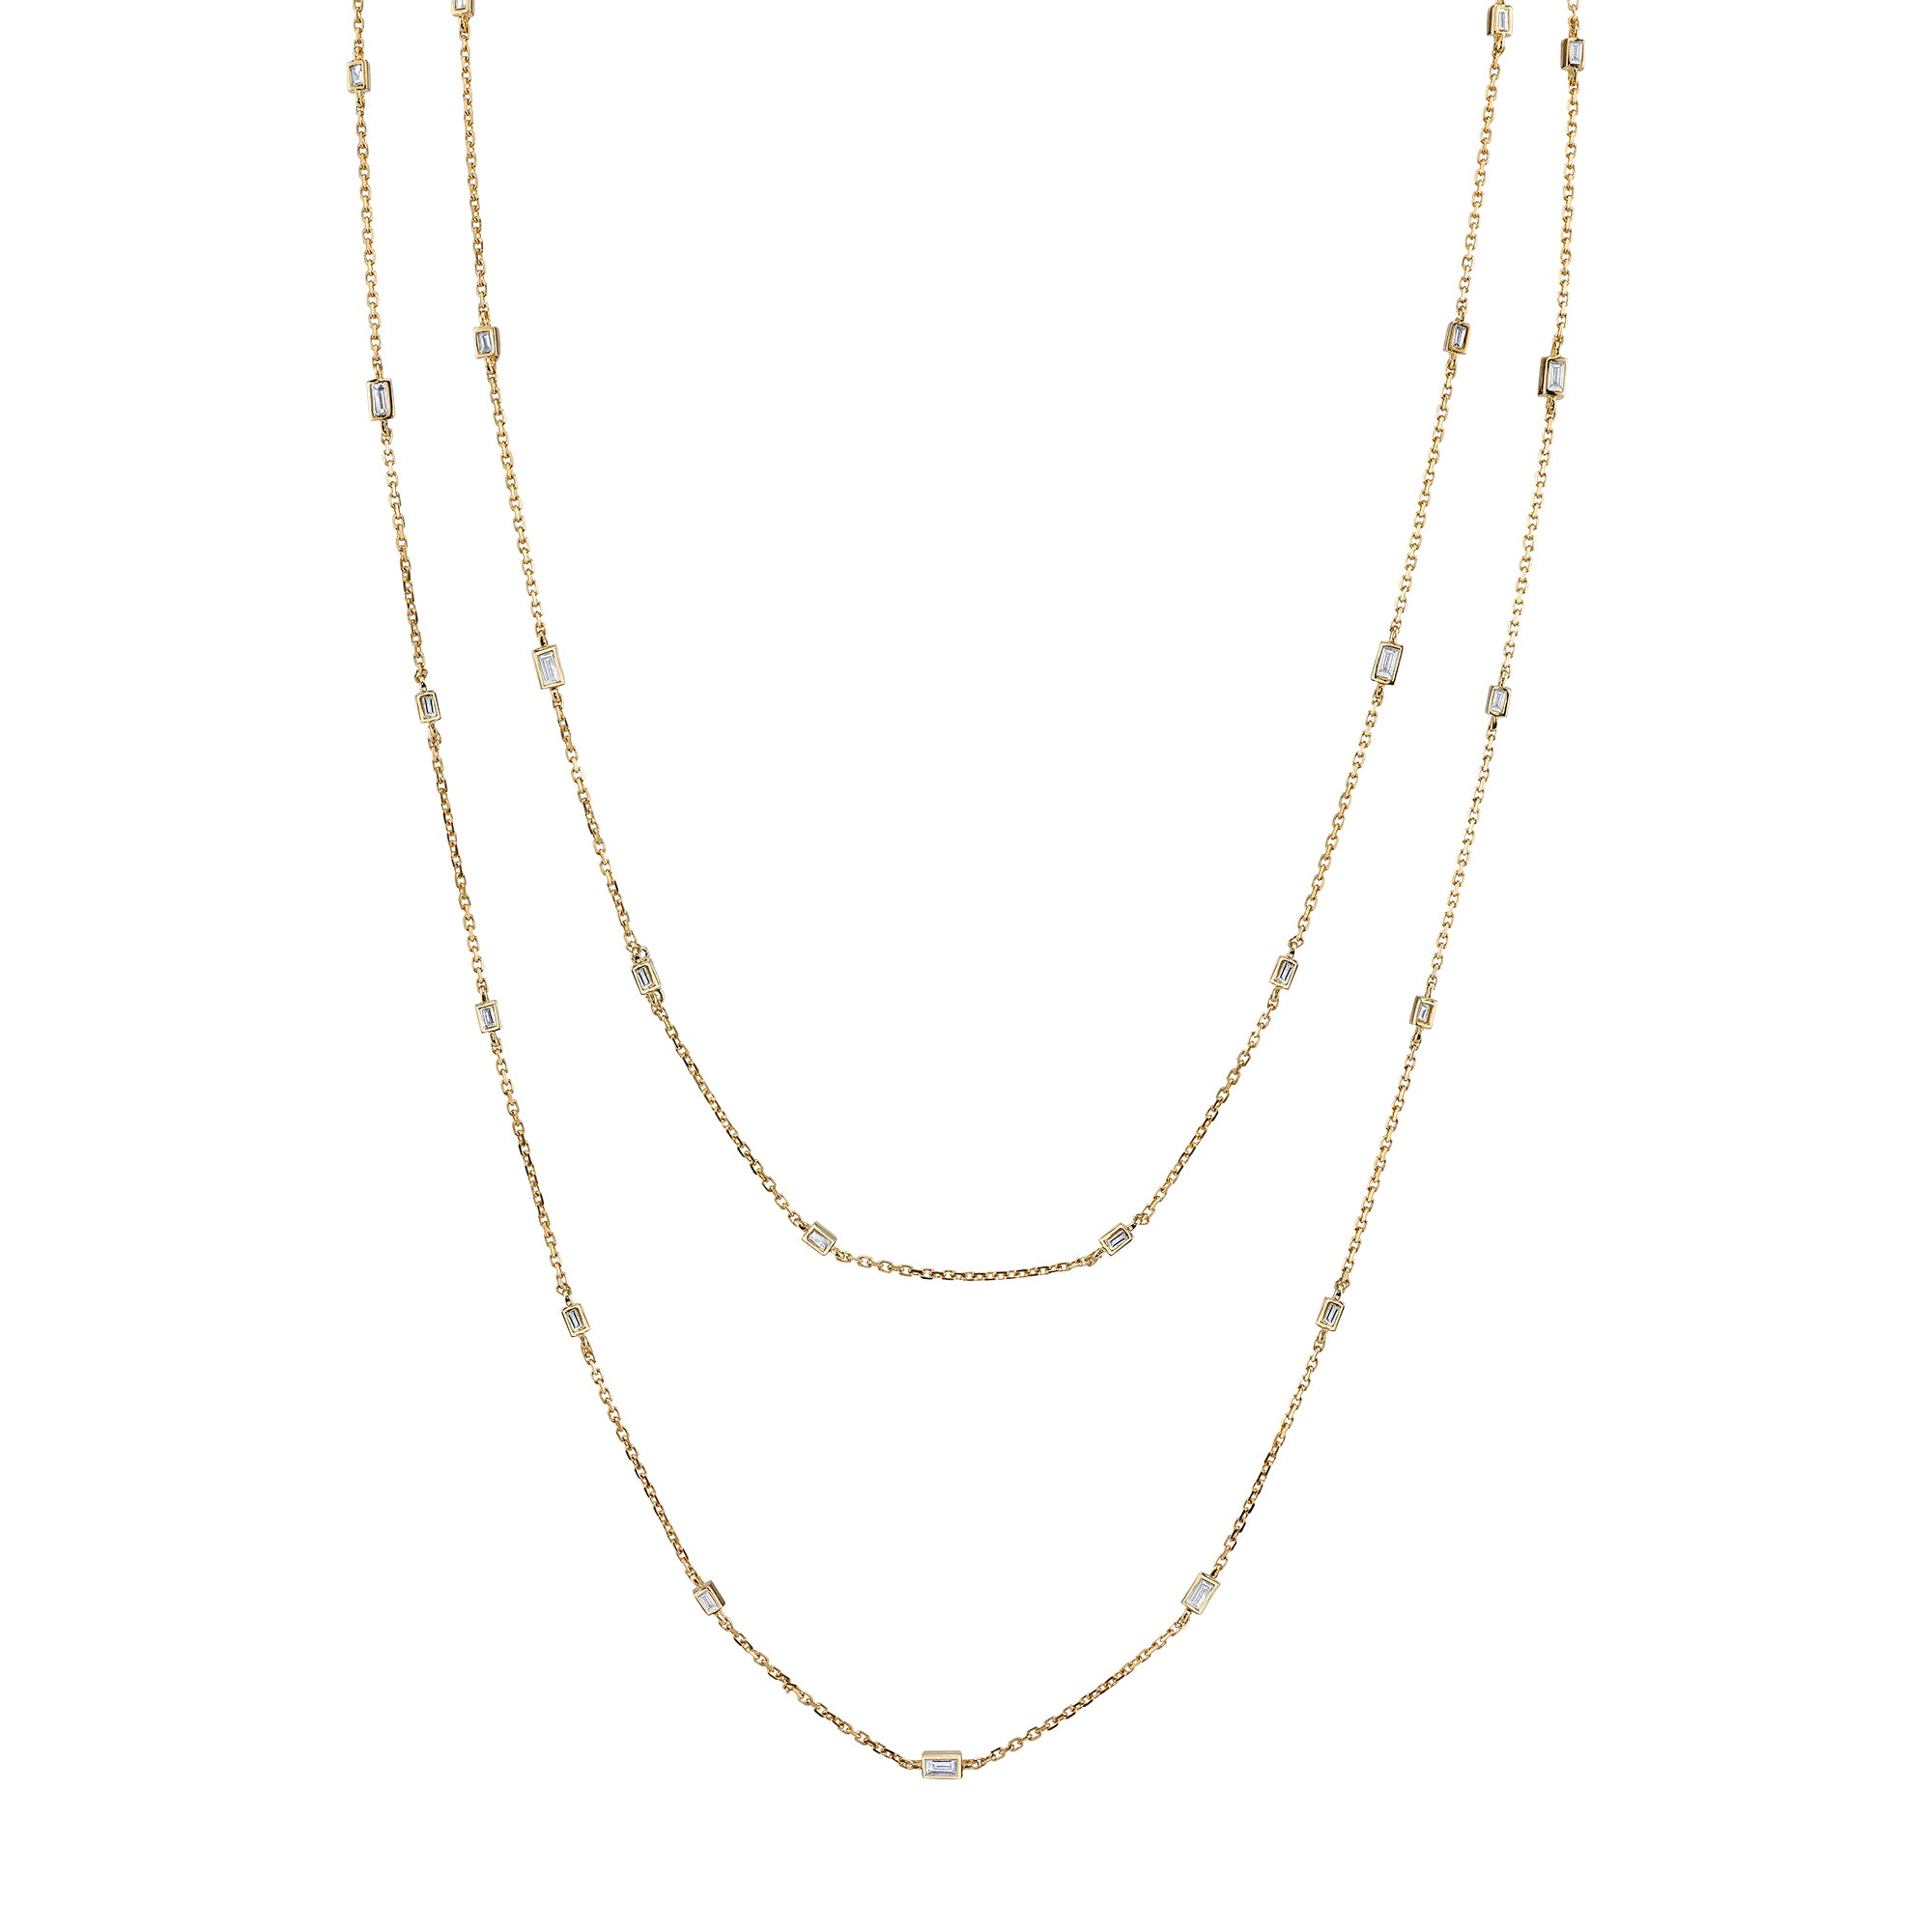 Gold & White Diamond Extra Long Baguette Chain Necklace by Borgioni for Broken English Jewelry